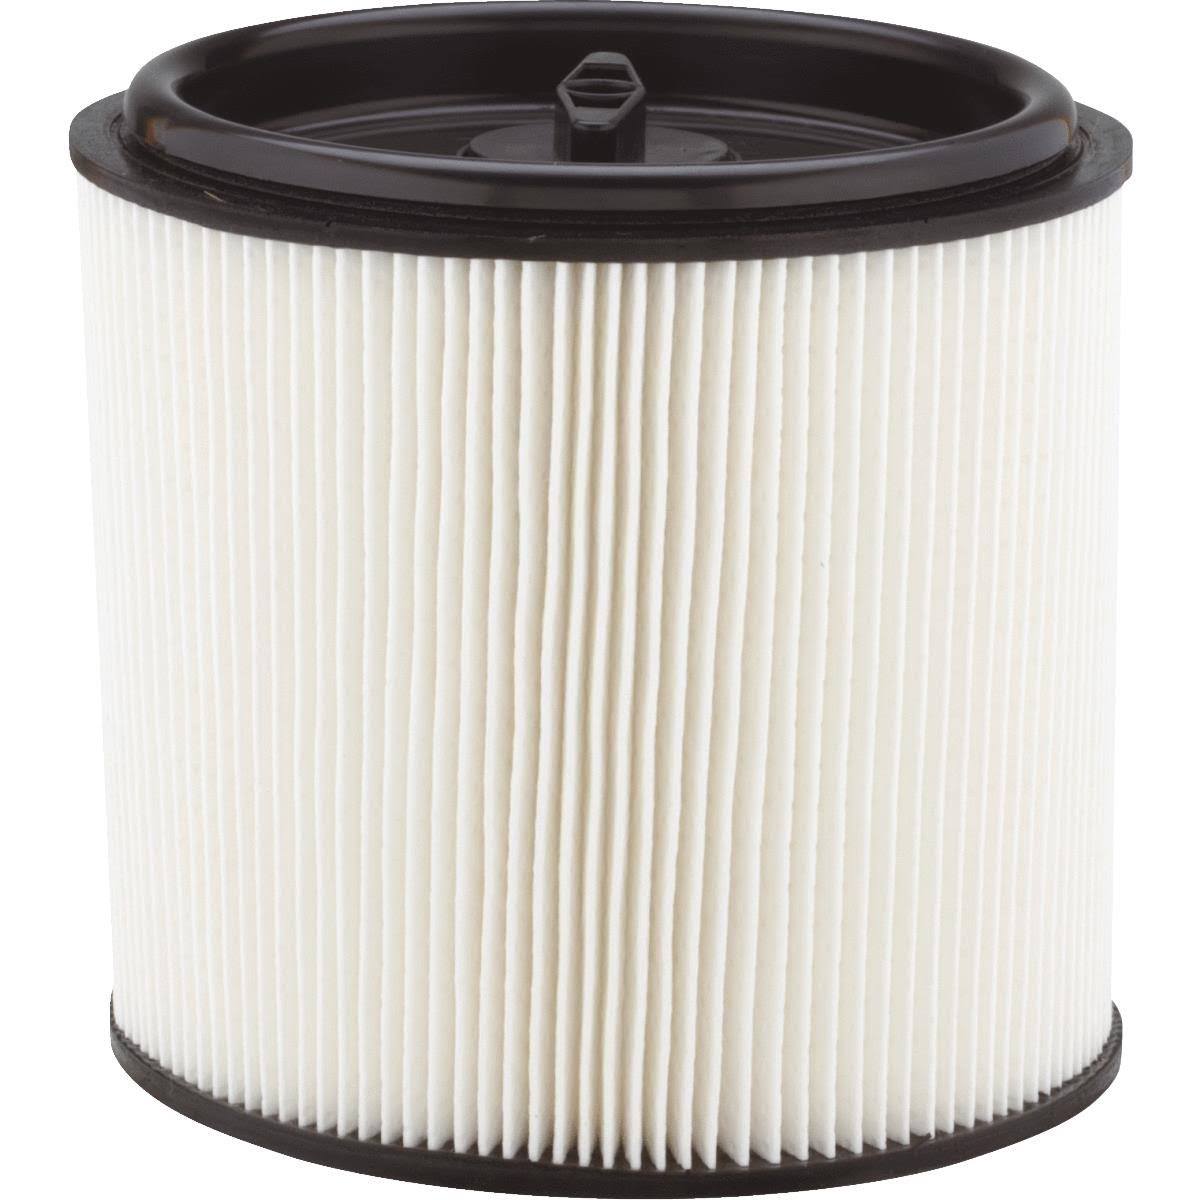 Channellock HEPA Cartridge Filter - 5 to 25gal